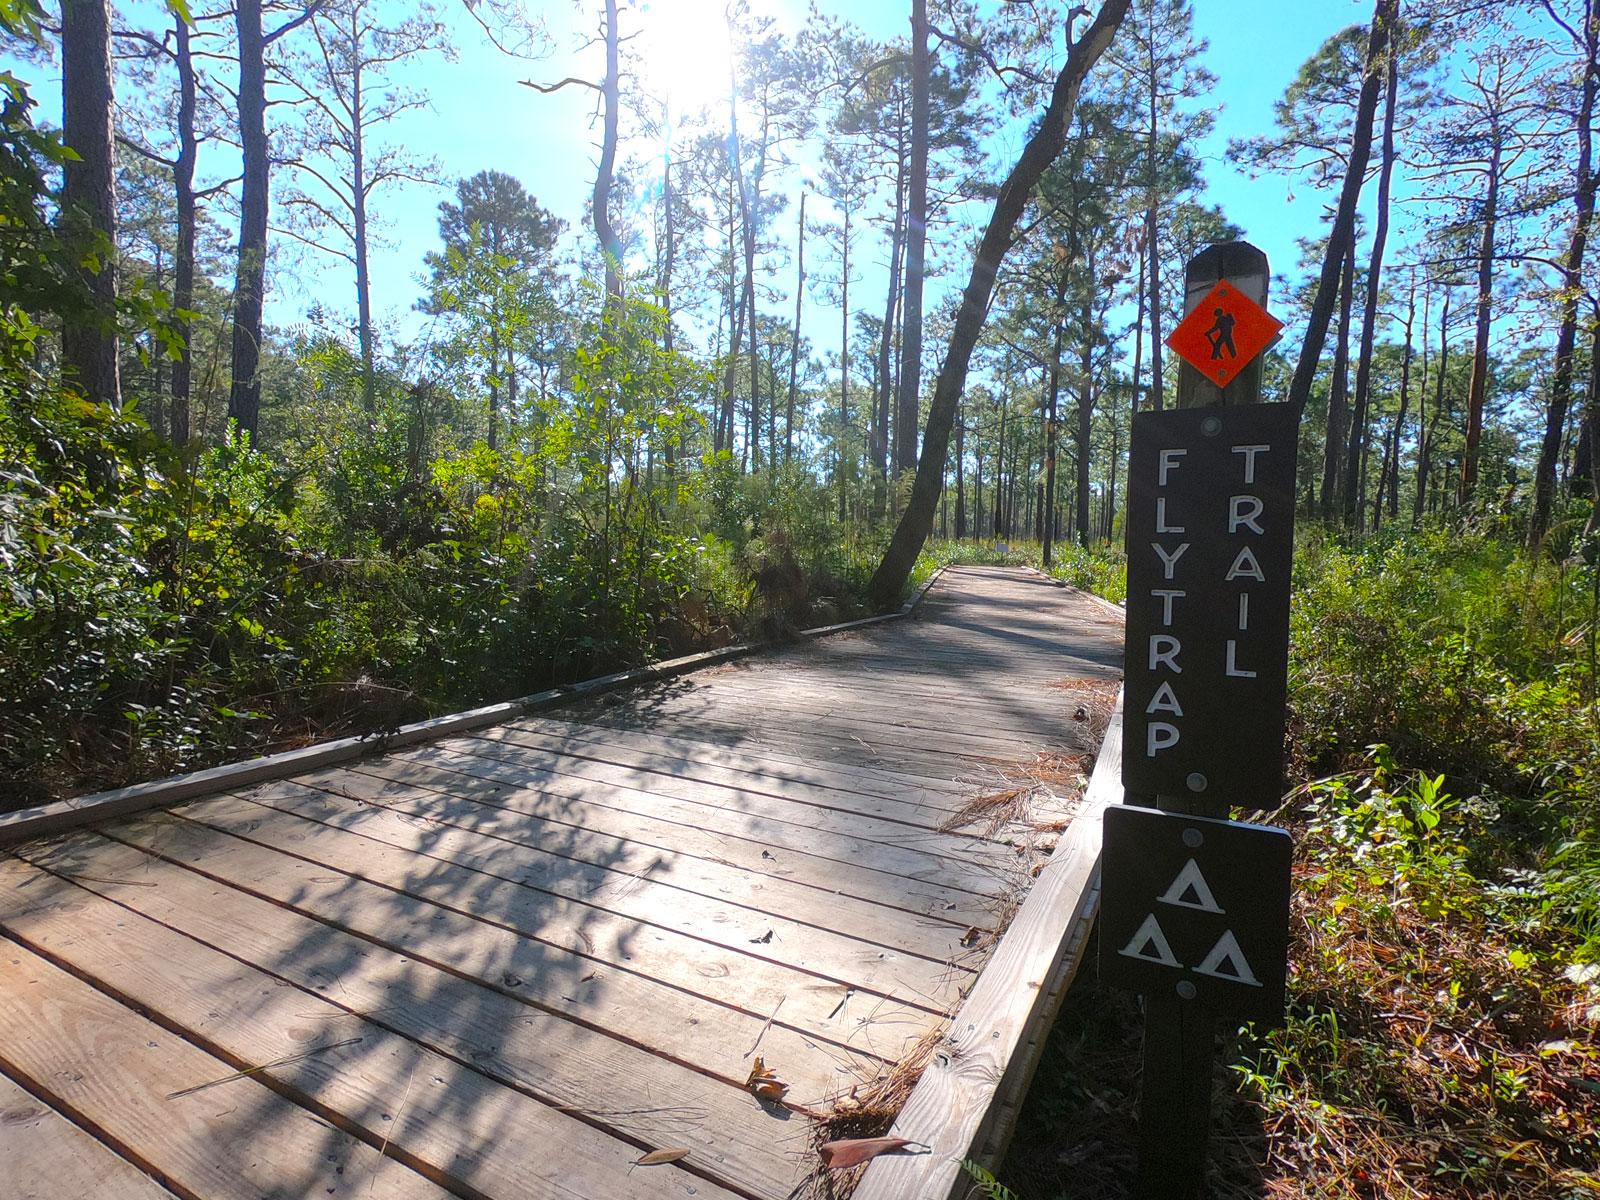 Boardwalk along the Flytrap Trail at Carolina Beach State Park in North Carolina